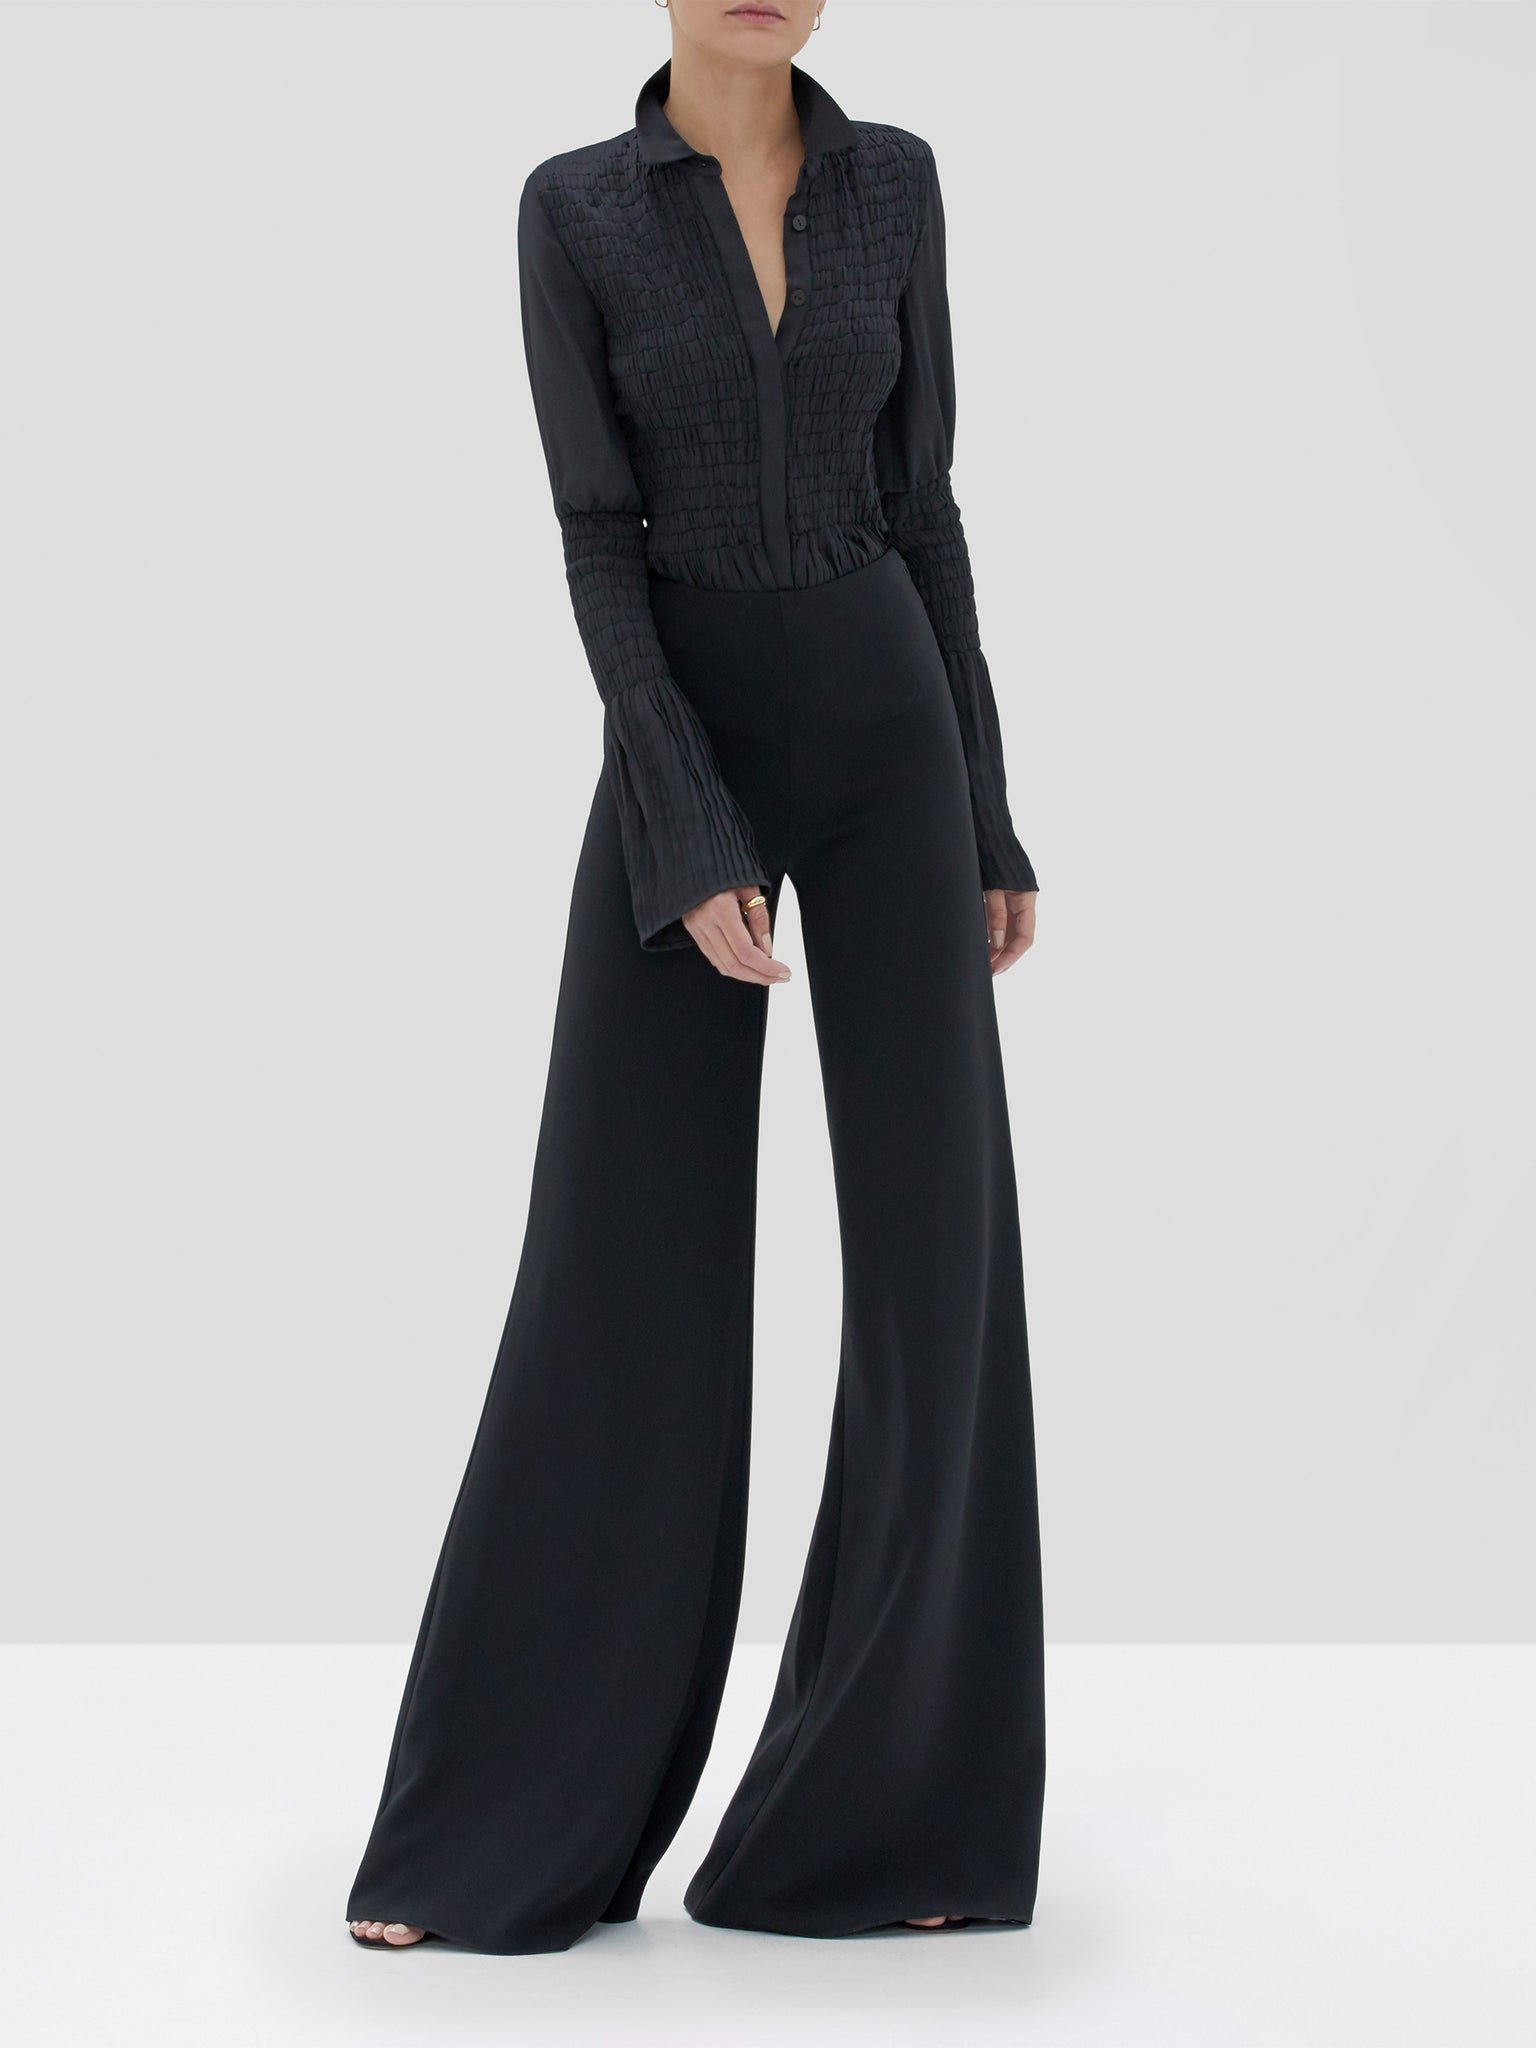 Alexis Chantal Top Black and Irvine Pant Black from Fall Winter 2019 Ready To Wear Collection